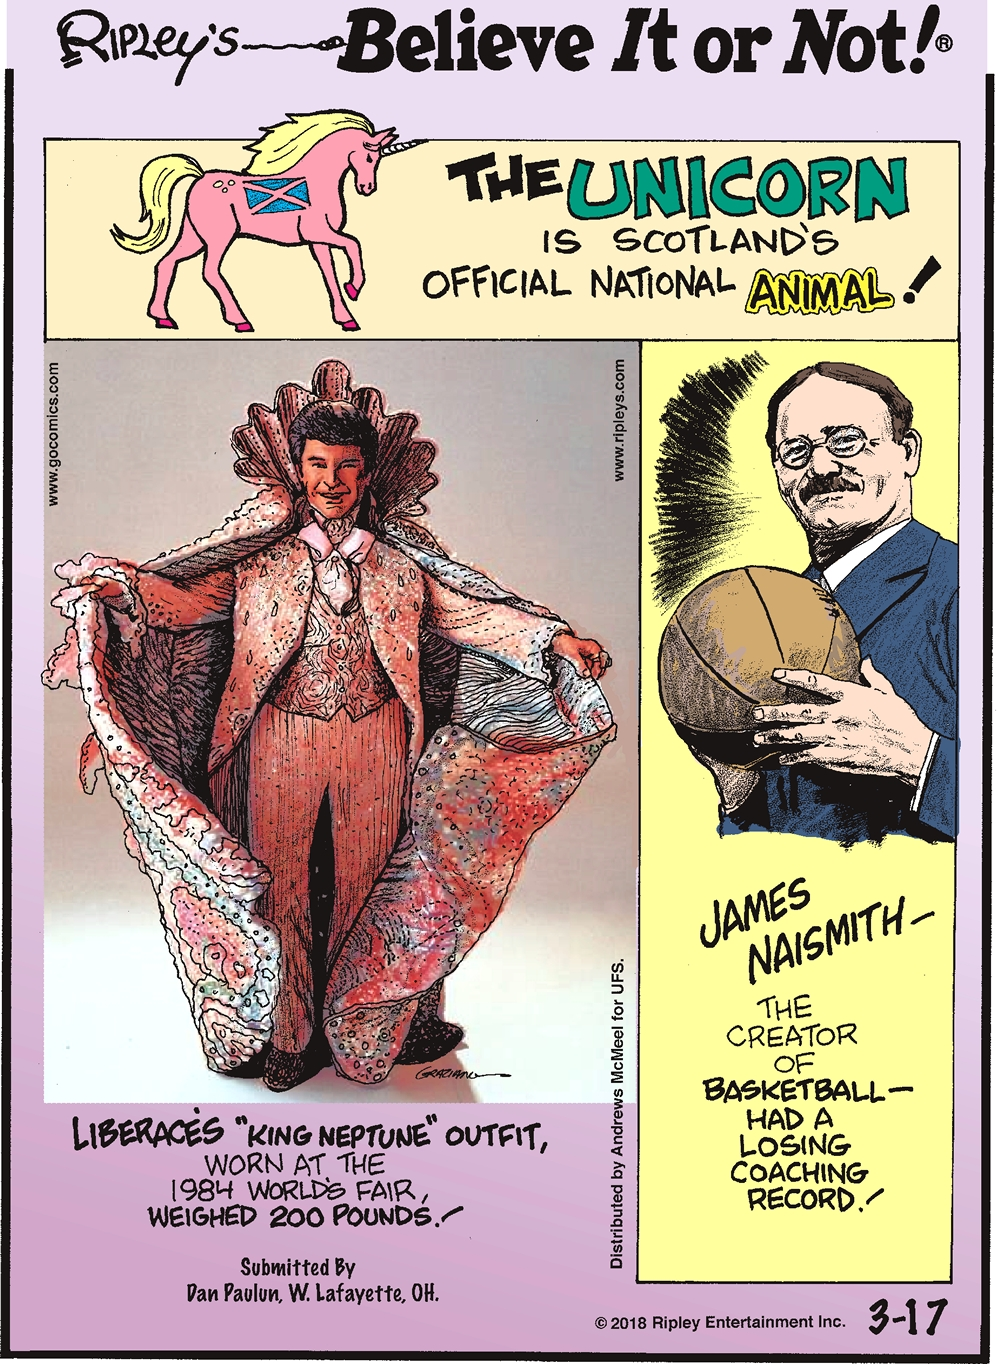 "The unicorn is Scotland's official national animal!-------------------- Liberace's ""King Neptune"" outfit, worn at the 1984 World's Fair, weighed 200 pounds! Submitted by Dan Paulun, W. Lafayette, OH.-------------------- James Naismith - the creator of basketball - had a losing coaching record!"